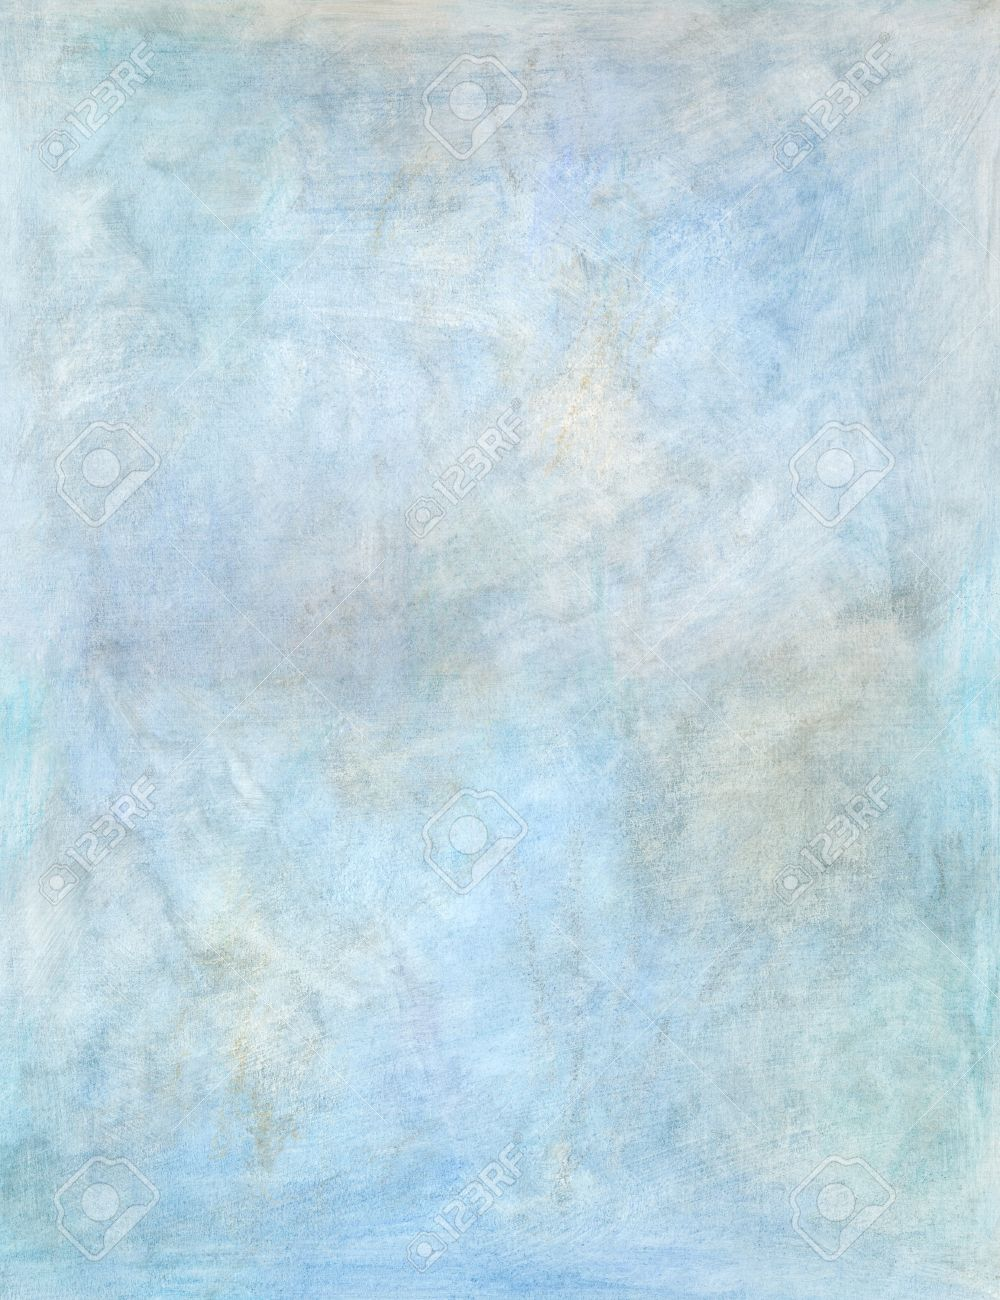 Artistic Blue Oil Painting Hand Painted Background Texture Stock